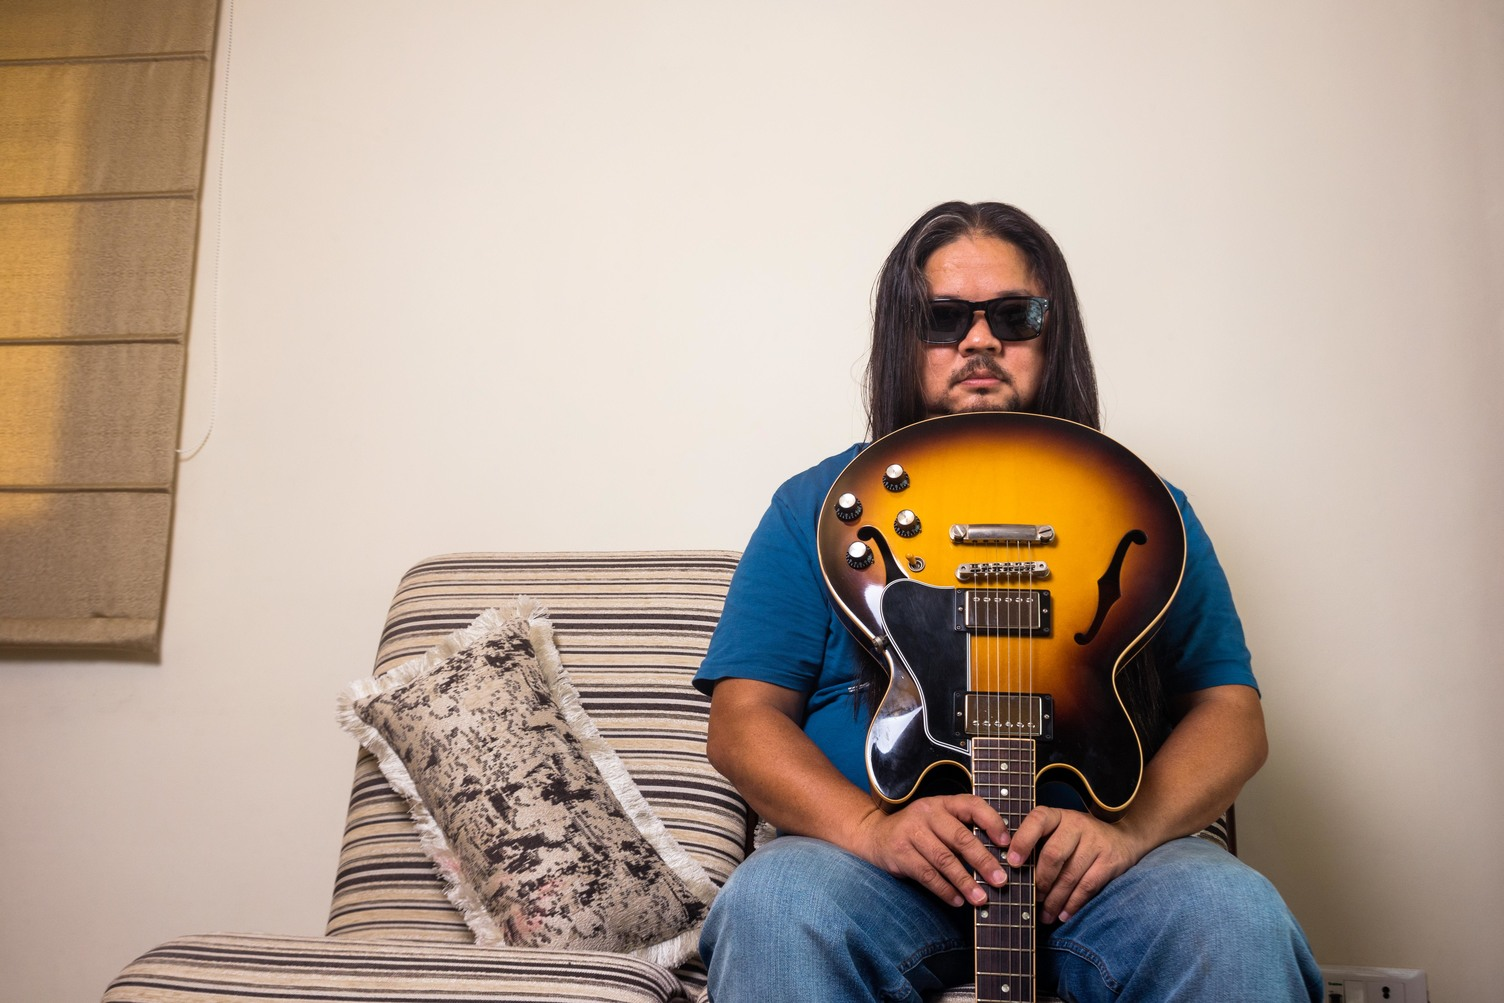 Sonam Sherpa is the lead guitarist of the popular band, Parikrama, photographed at his residence in Safdarjung Enclave, New Delhi